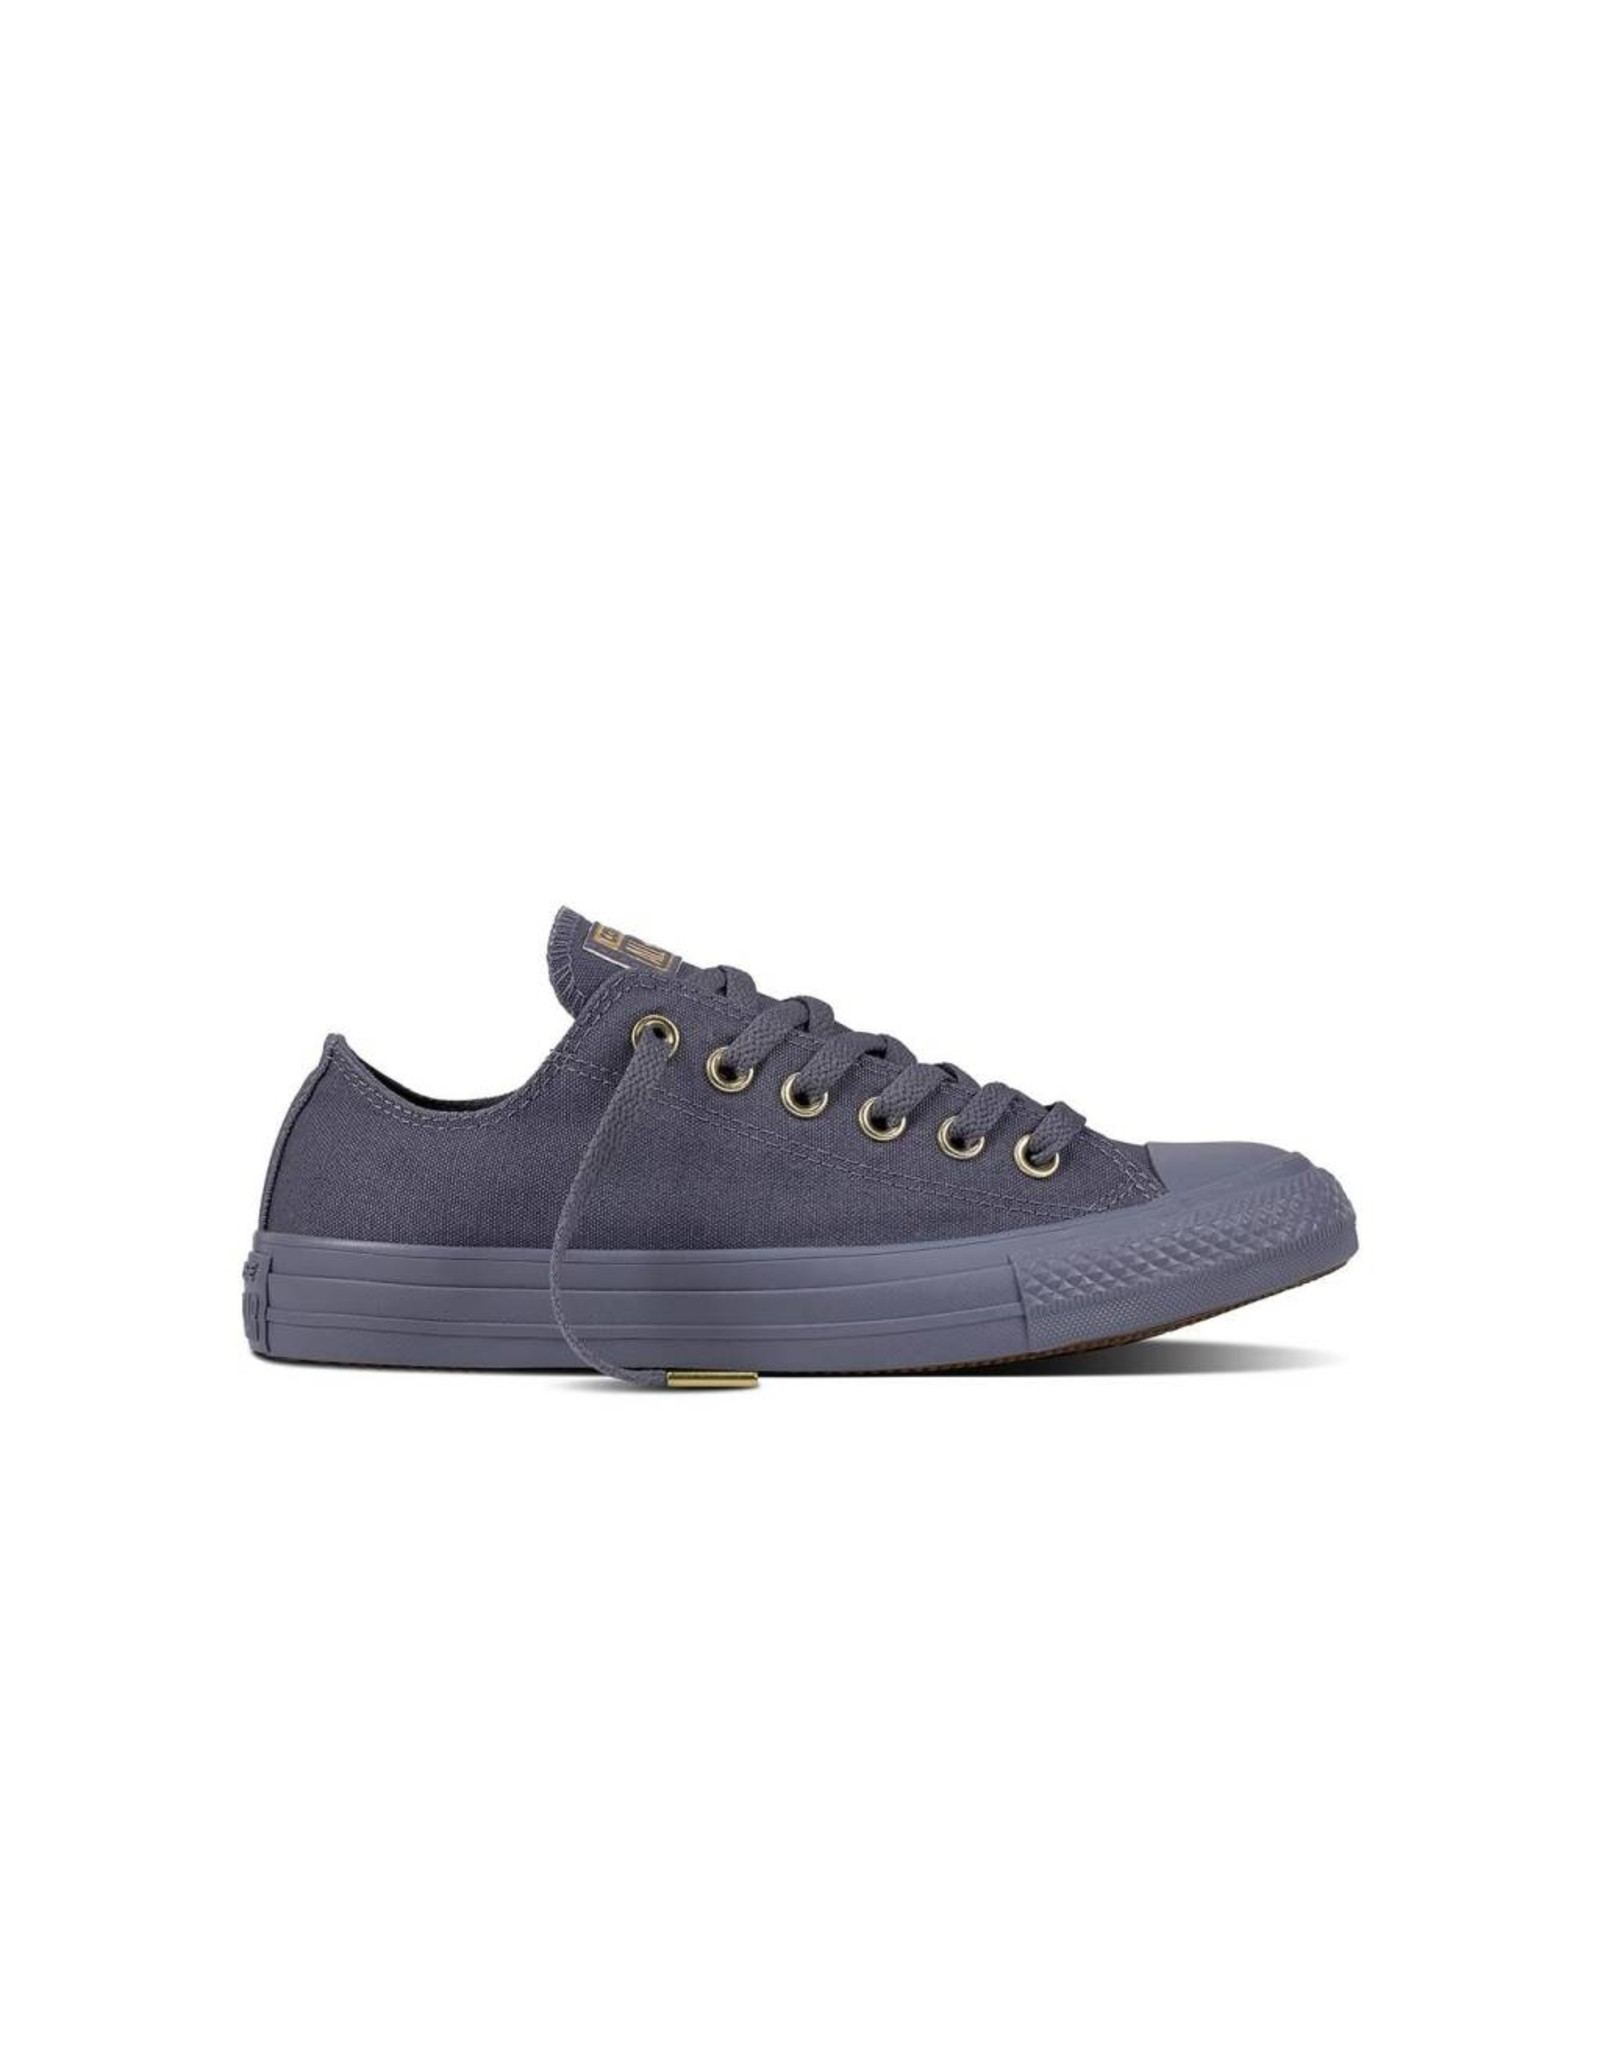 CONVERSE CHUCK TAYLOR OX LIGHT CARBON/LIGHT CARBON/GOLD C12LC-559941C